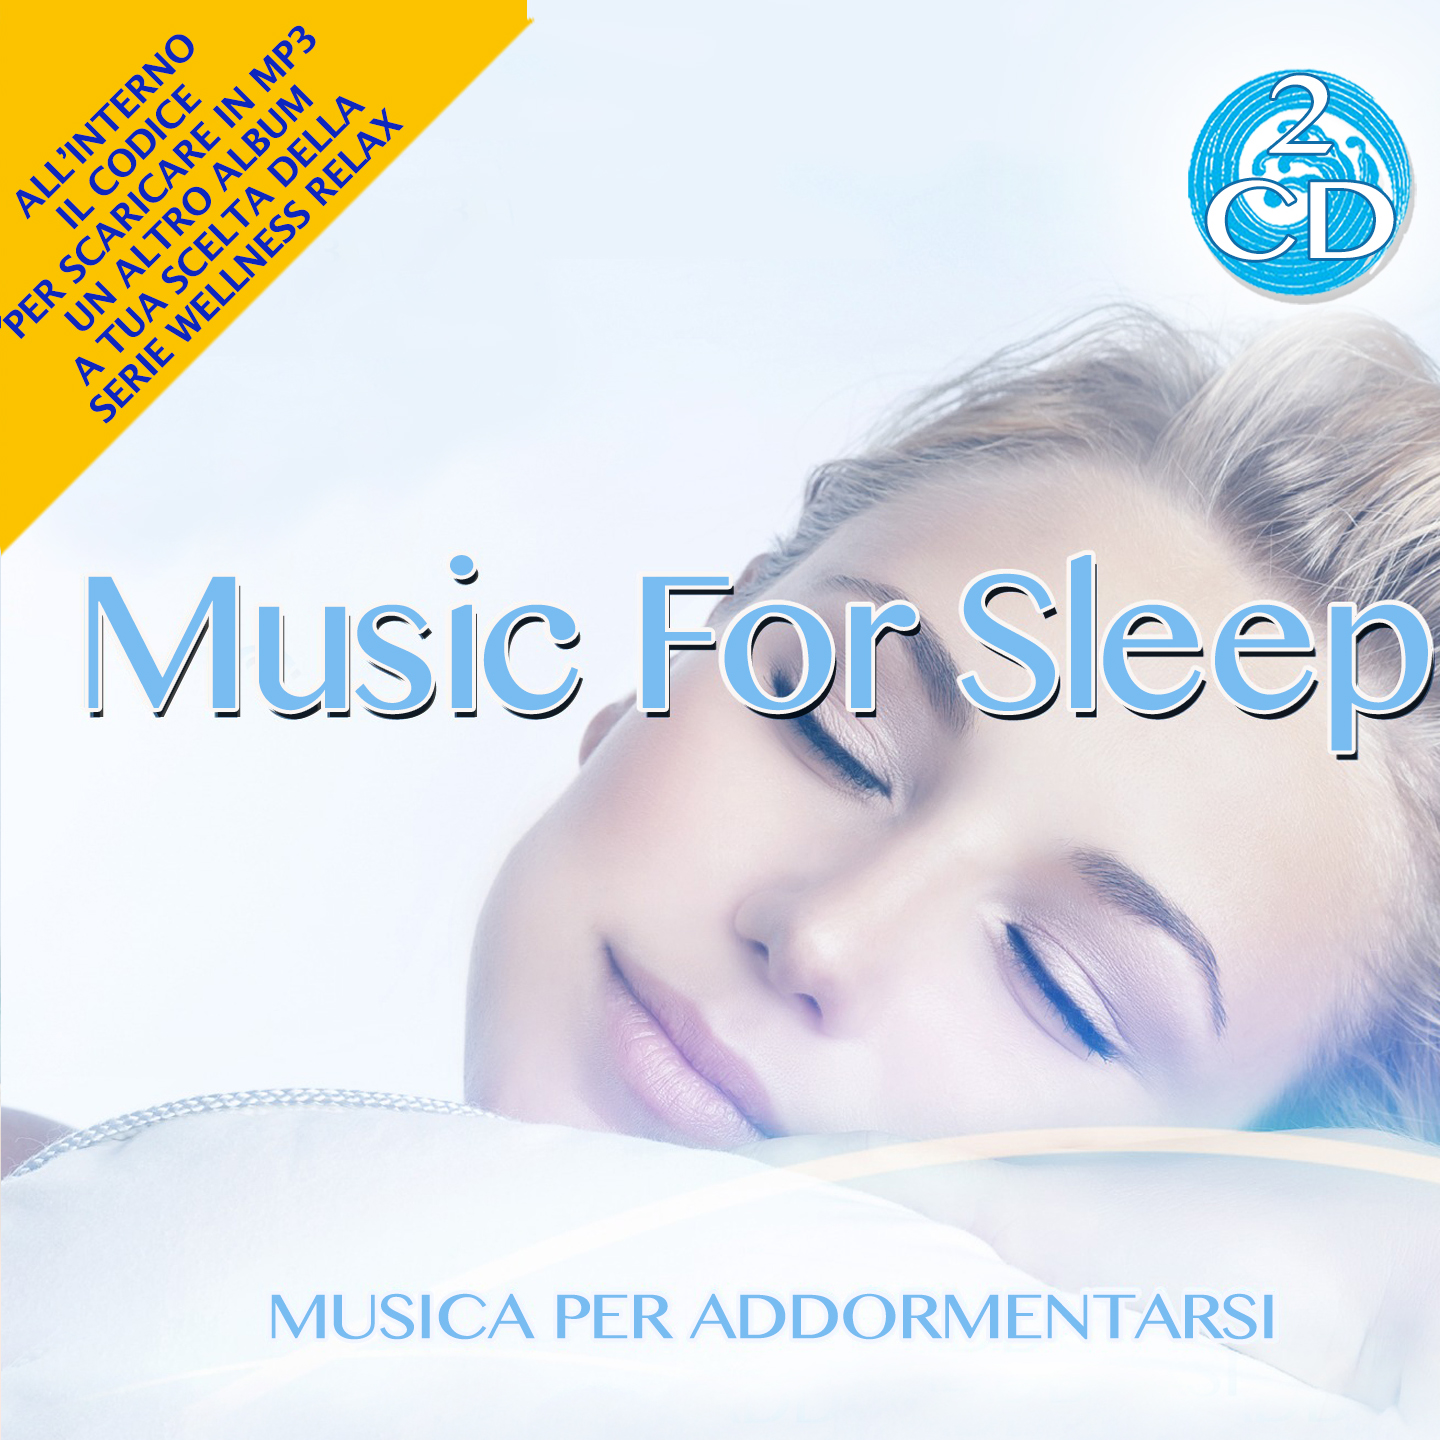 Music for Sleeping: Musica per addormentarsi